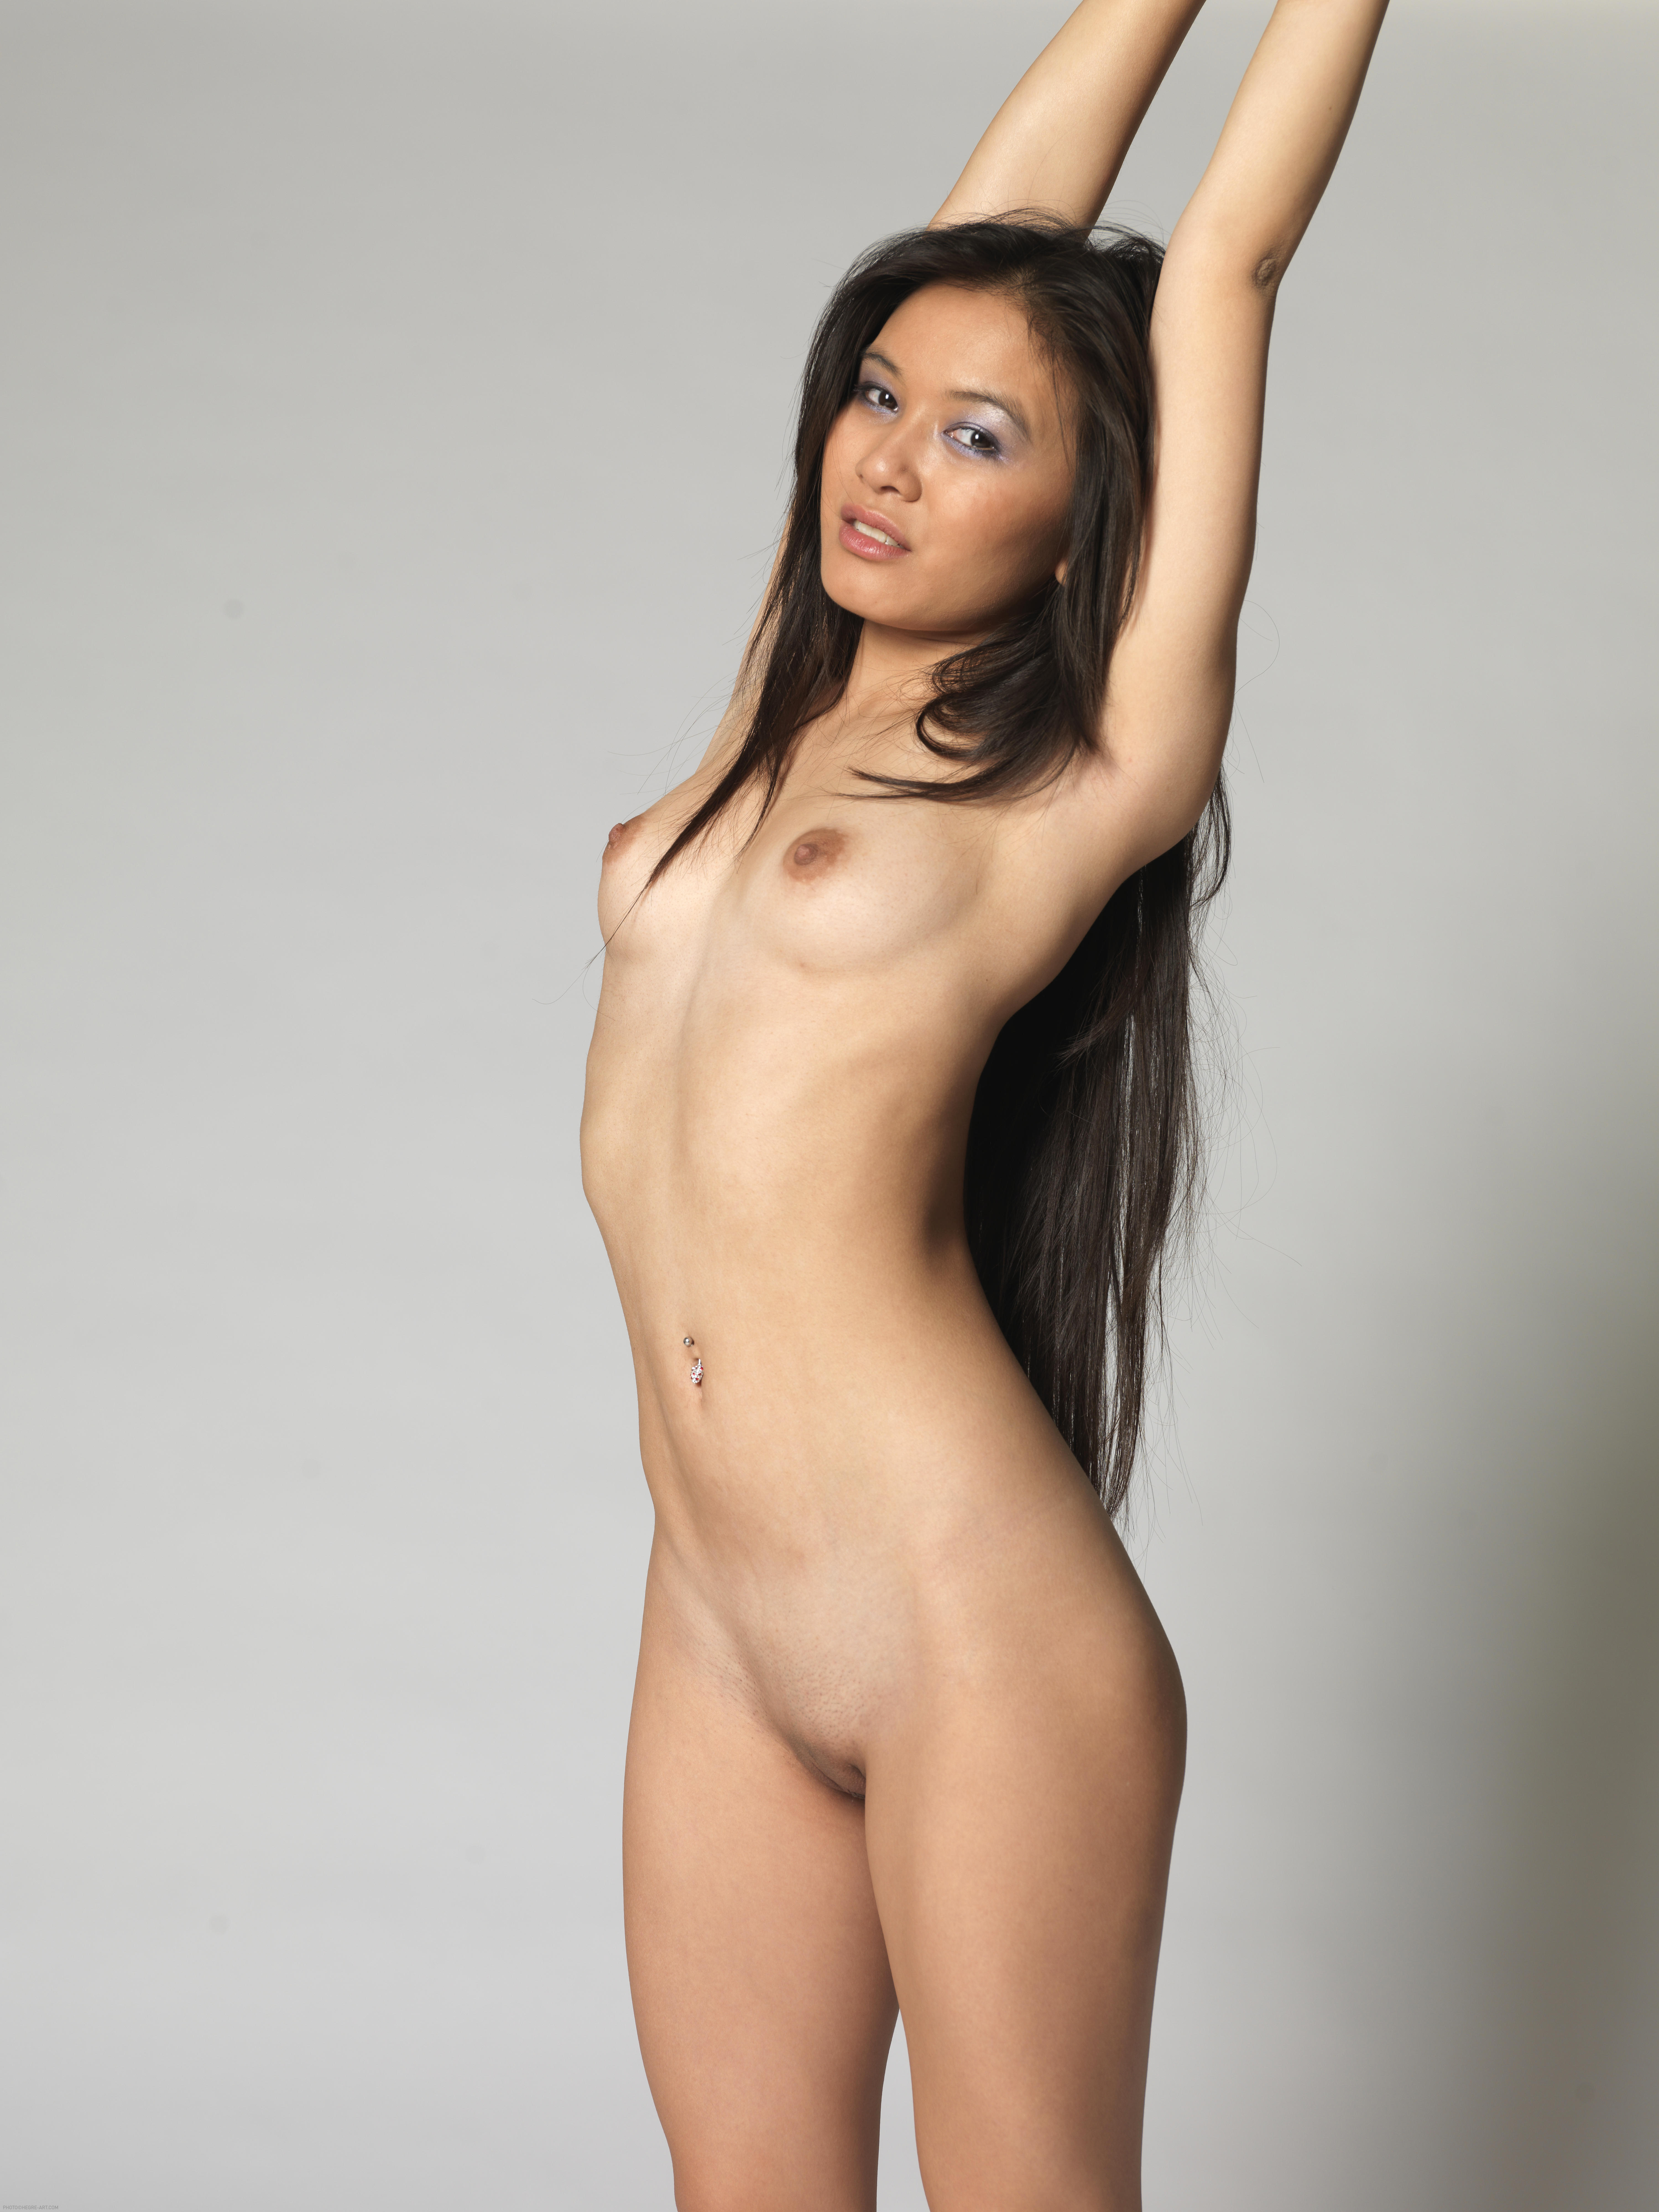 Can Free search personals nude opinion you